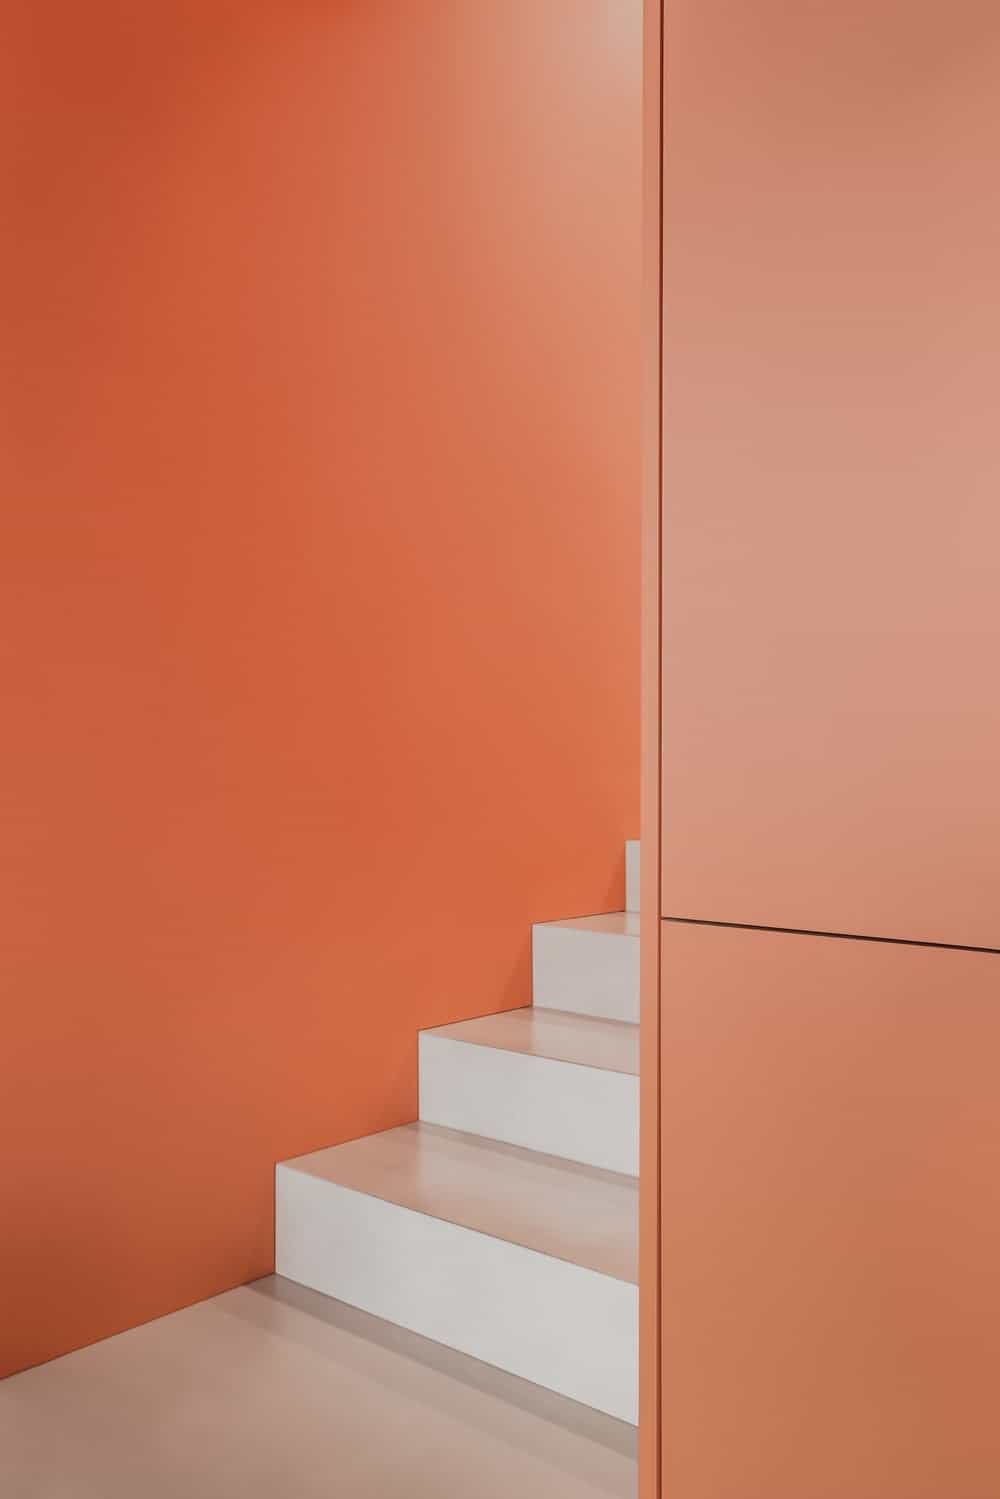 This is a look at the light gray steps of the staircase that is contrasted by the matte orange wall panels.